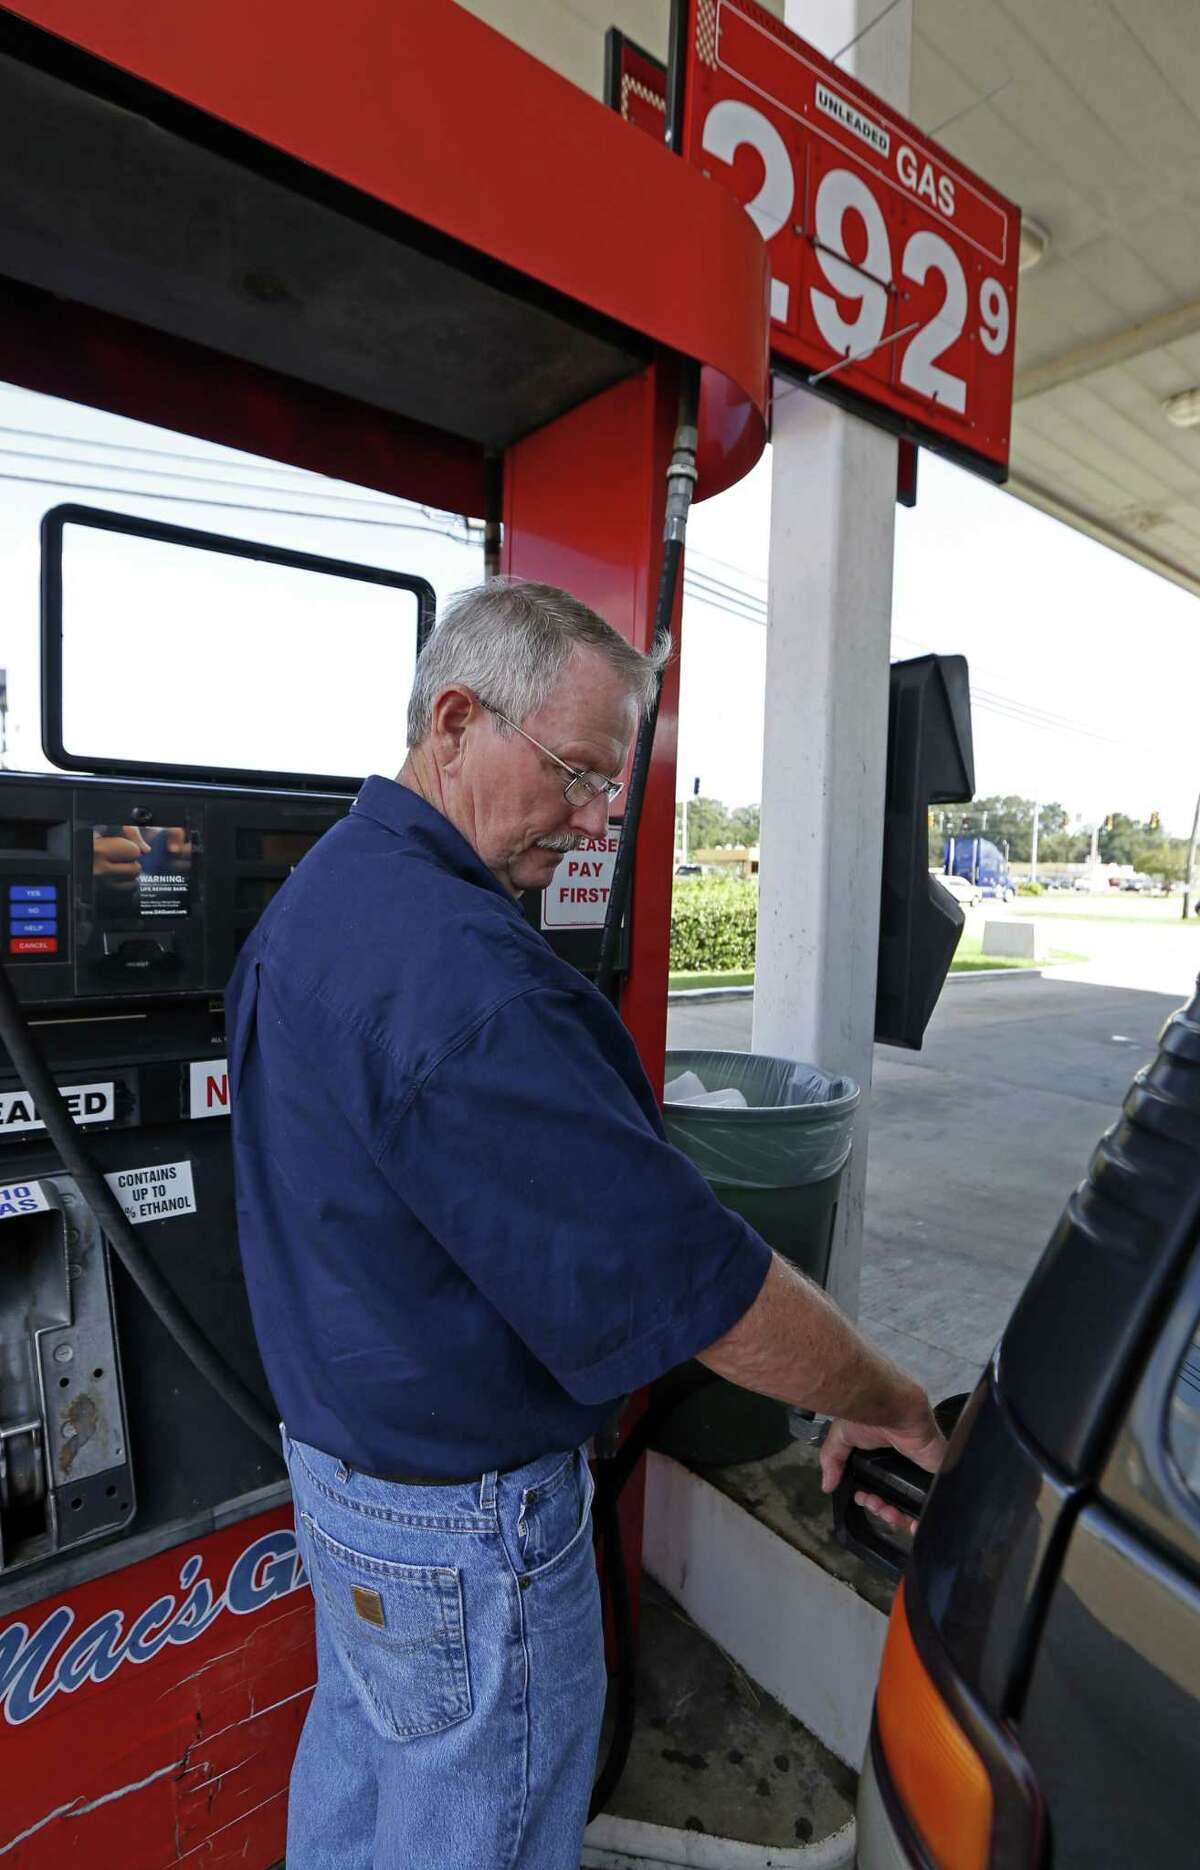 """In this Wednesday, Sept. 24, 2014 photo, Foster Gilley, of Chatom, Ala., fills his SUV's tank with $2.92-per-gallon regular gas at Mac's Gas in Richland, Miss. The typical autumn decline in gasoline prices is getting a big push lower by falling global oil prices. By the end of the year, up to 30 states could have an average gasoline price of under $3 a gallon. Gilley and his wife were visiting his brother in Vicksburg and were """"enjoying the lower prices,"""" he said."""